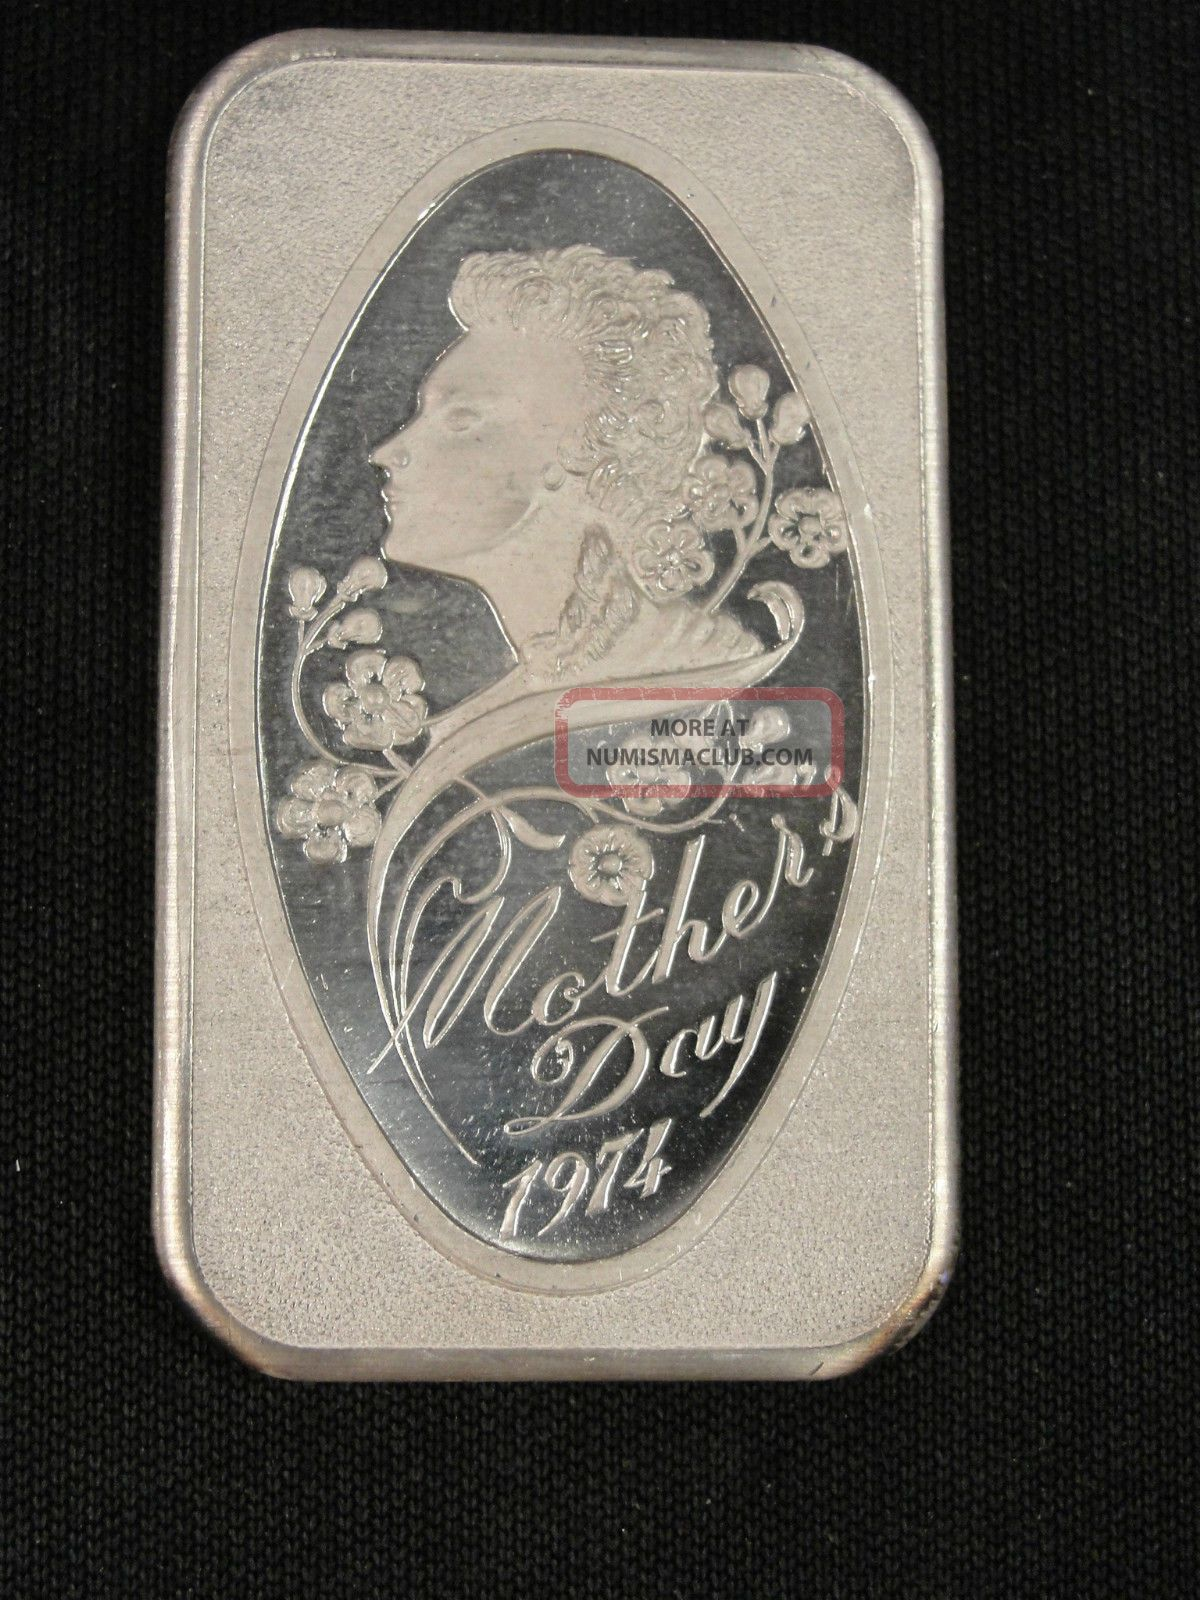 10 Troy Oz 999 Fine Silver Bar 10 Troy Oz 999 Fine Silver